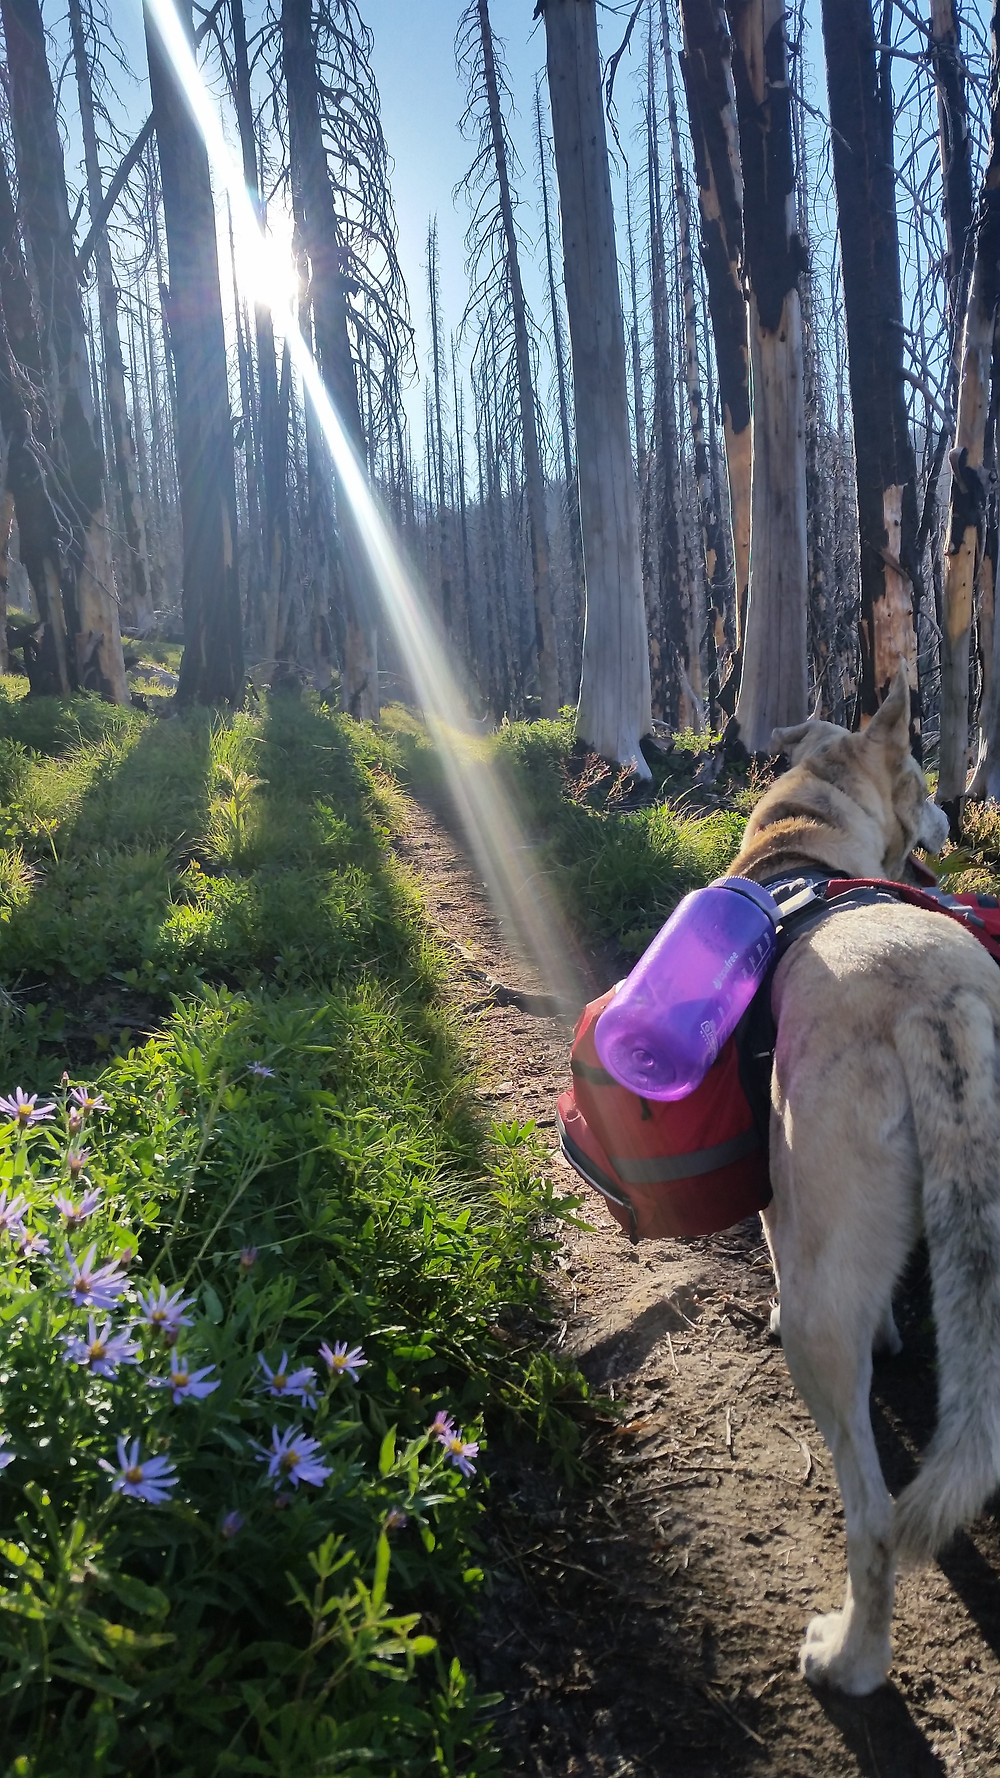 A blond dog stands facing away from the camera on a thin trail by bright green grass and purple flowers. Ahead are rows of burnt tree skeletons.